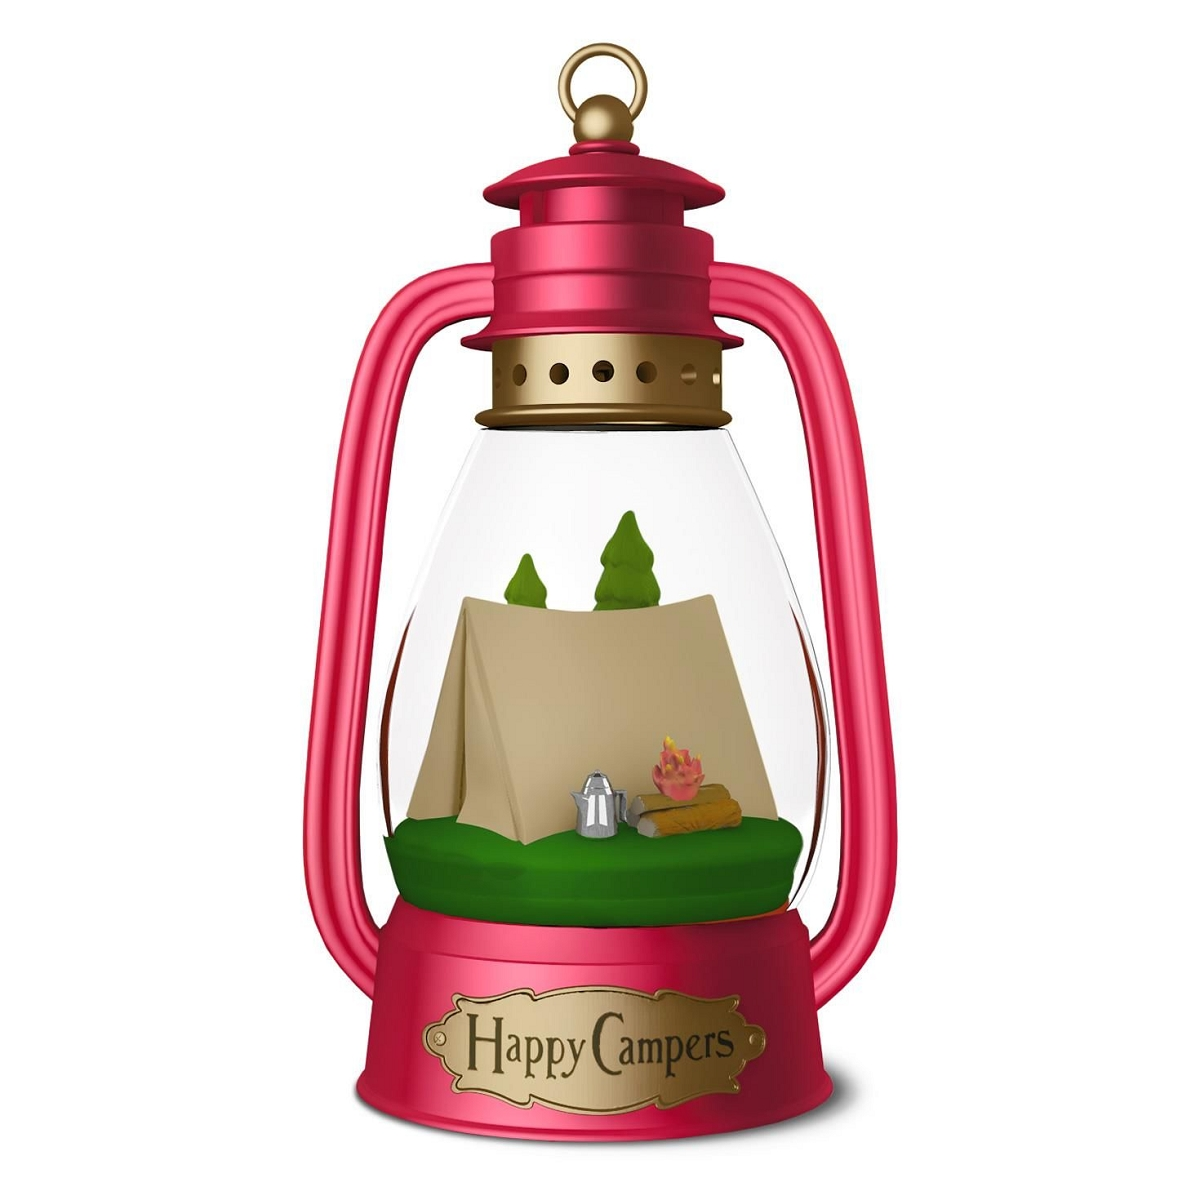 2016 happy campers hallmark keepsake ornament